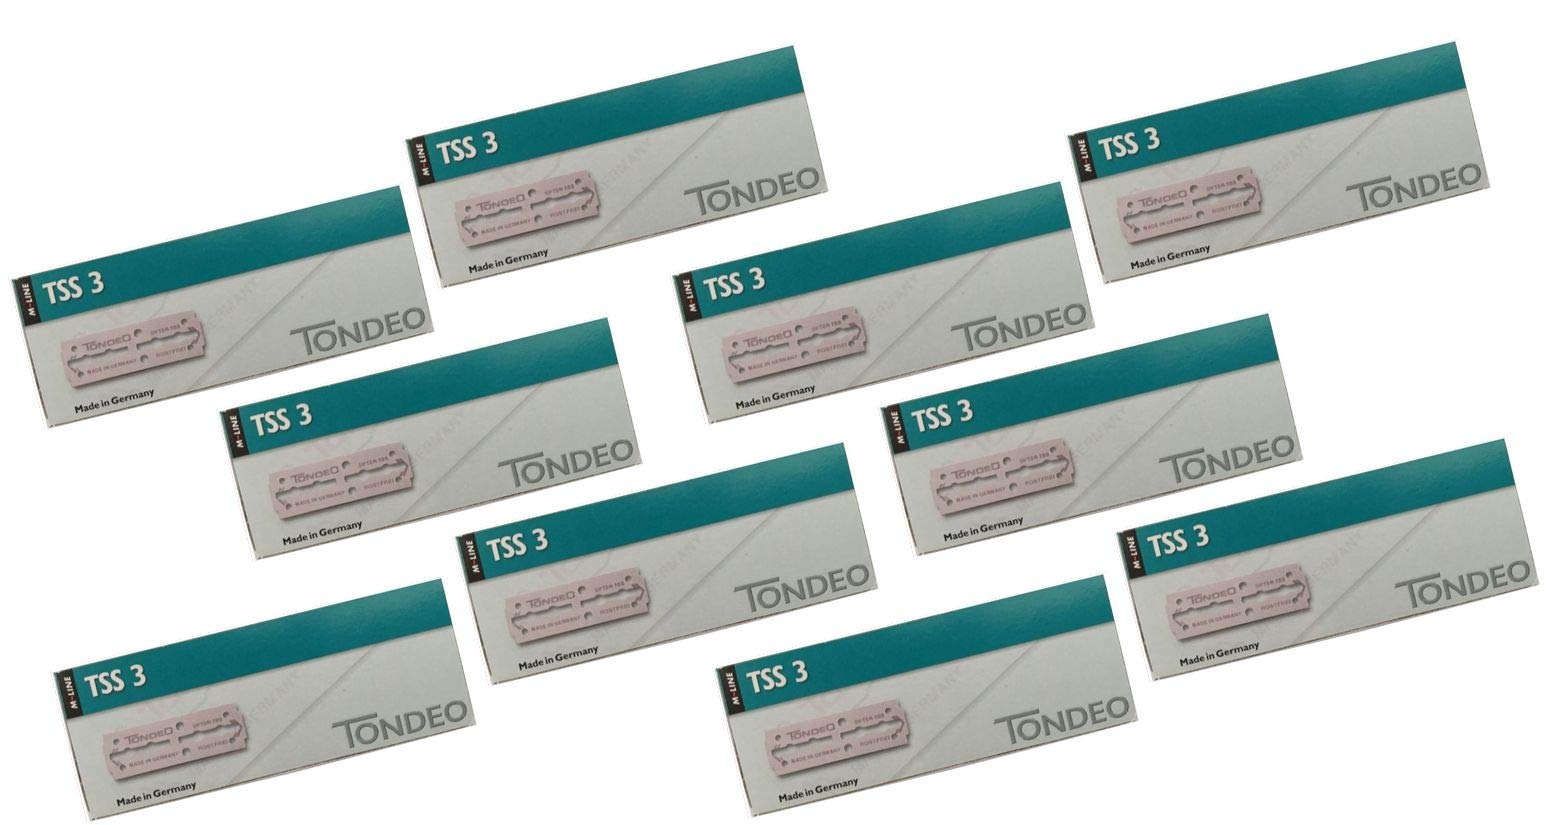 Tondeo BLADES 10-Pack for TONDEO Sifter RAZOR (10-10 Pack Razor Blades) by CacheBeauty